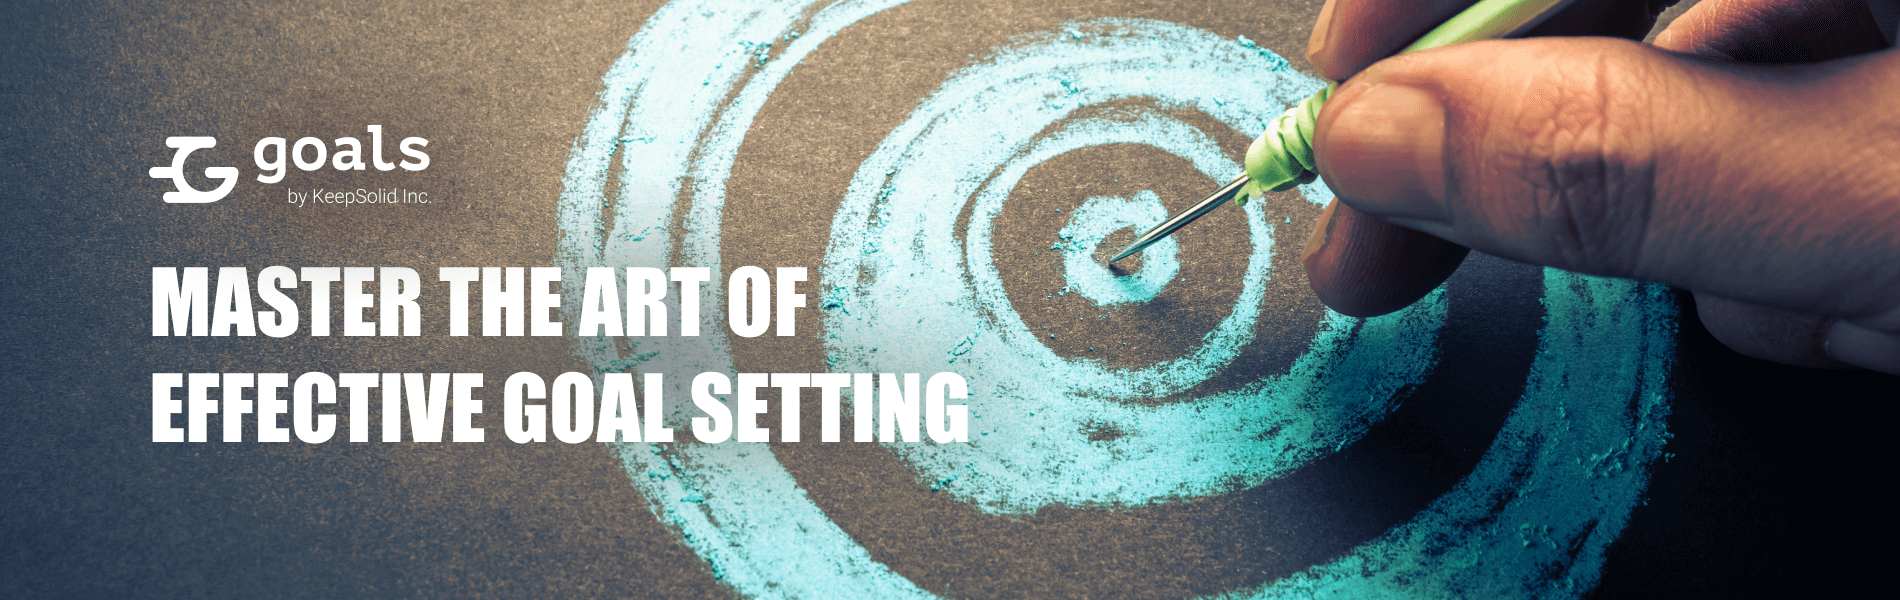 Master the Art of Effective Goal Setting